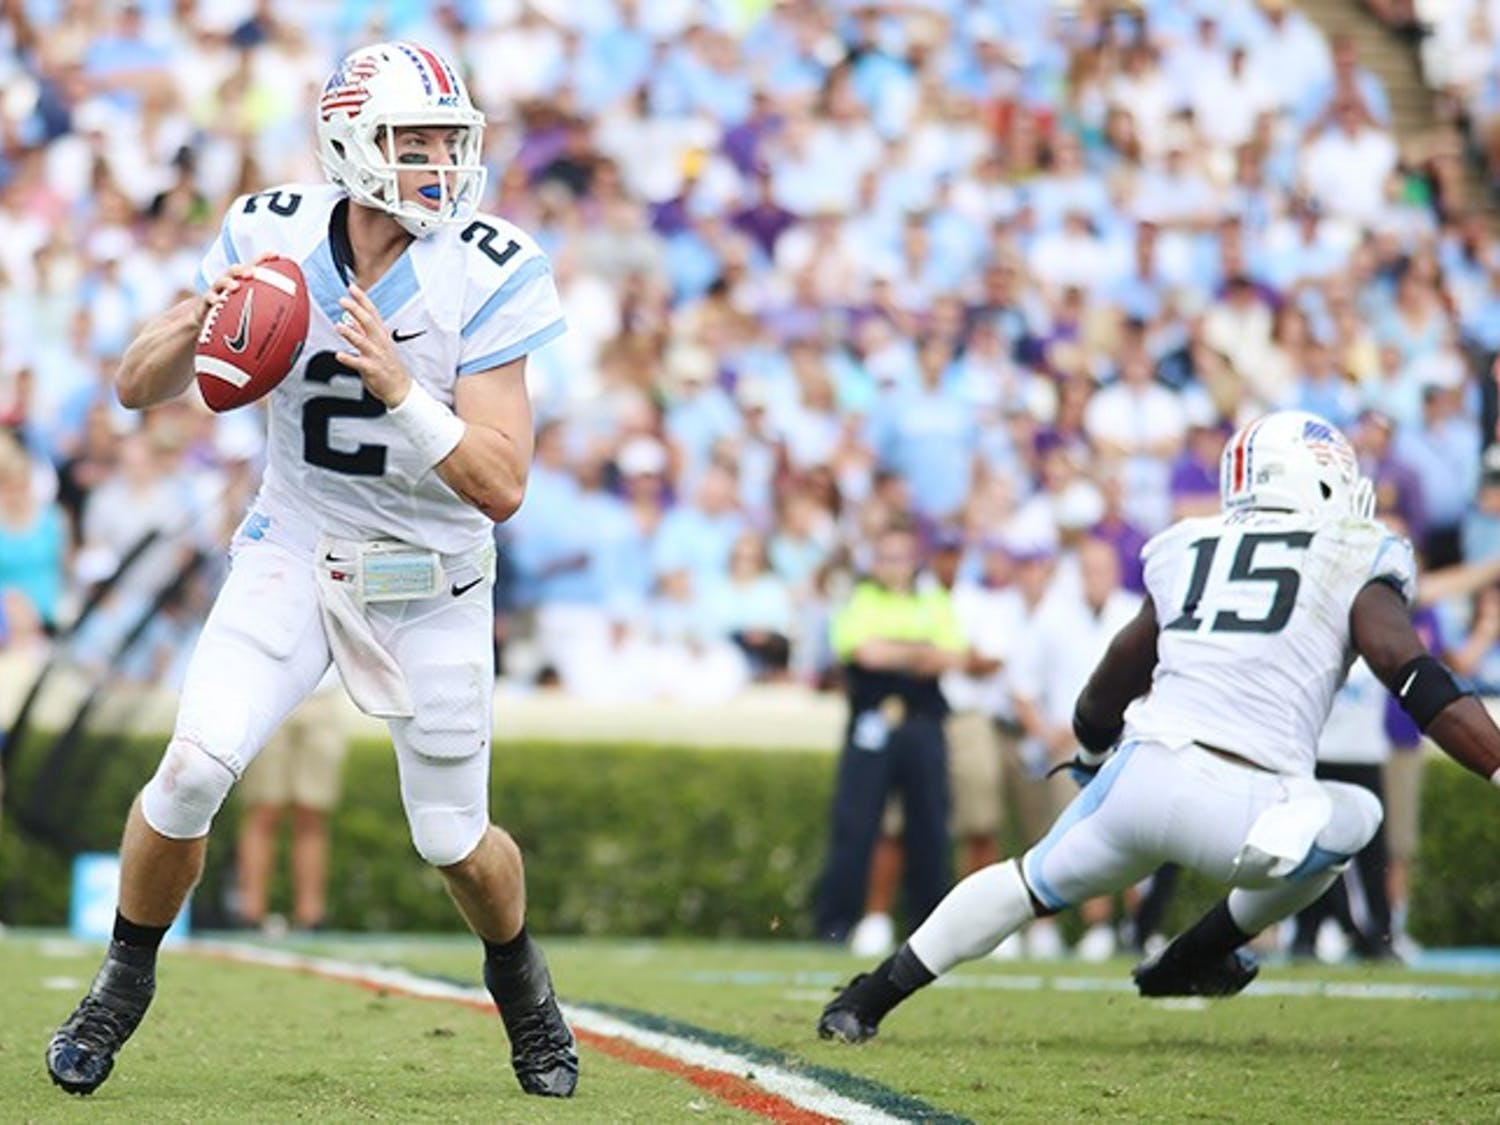 After Bryn Renner sat out of UNC's 27-17 loss to Virginia Tech Oct. 5 with a foot injury, coach Larry Fedora said the quarterback will return to the starting lineup Thursday against No. 10 Miami.